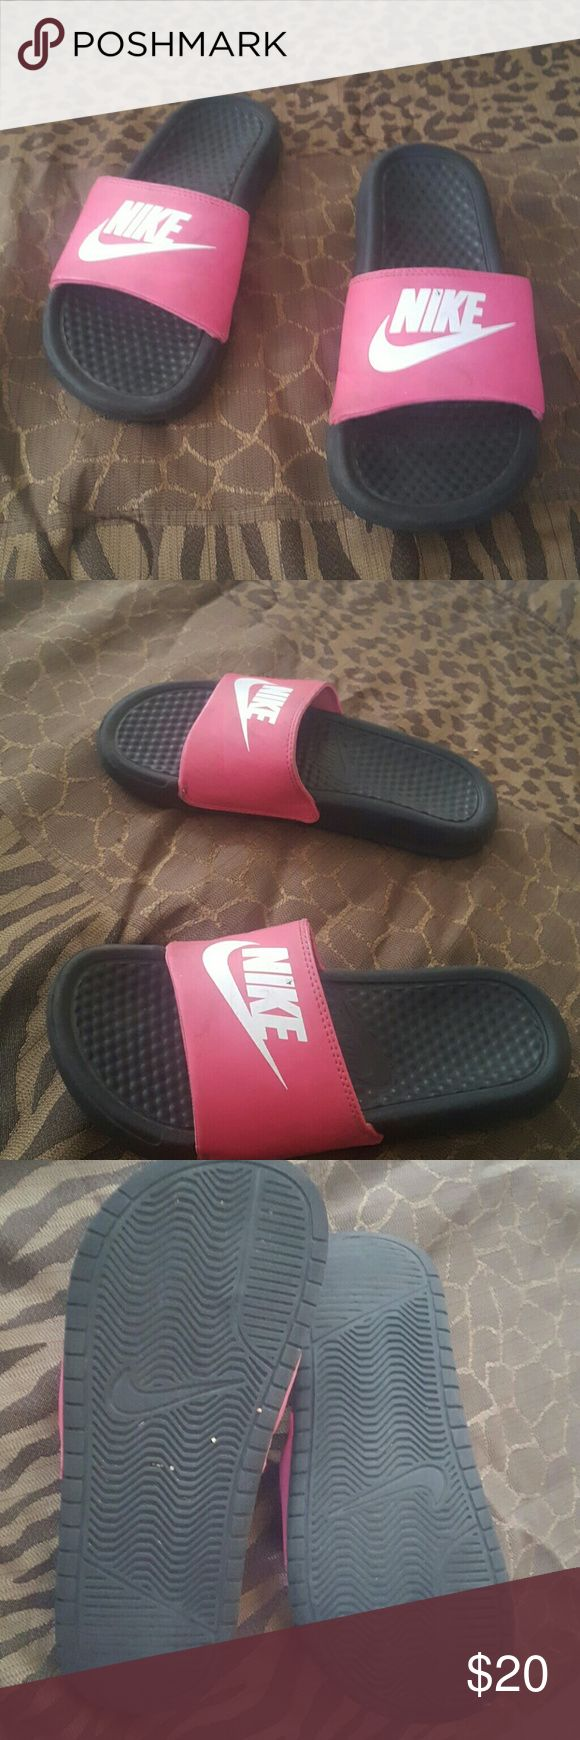 Nike Sandals Nike sandals. A fair condition, a lot of life in them still. Now these are a size US 4y, might fit a size 7 or 7 1/2 in regular women size. Nike Shoes Sandals